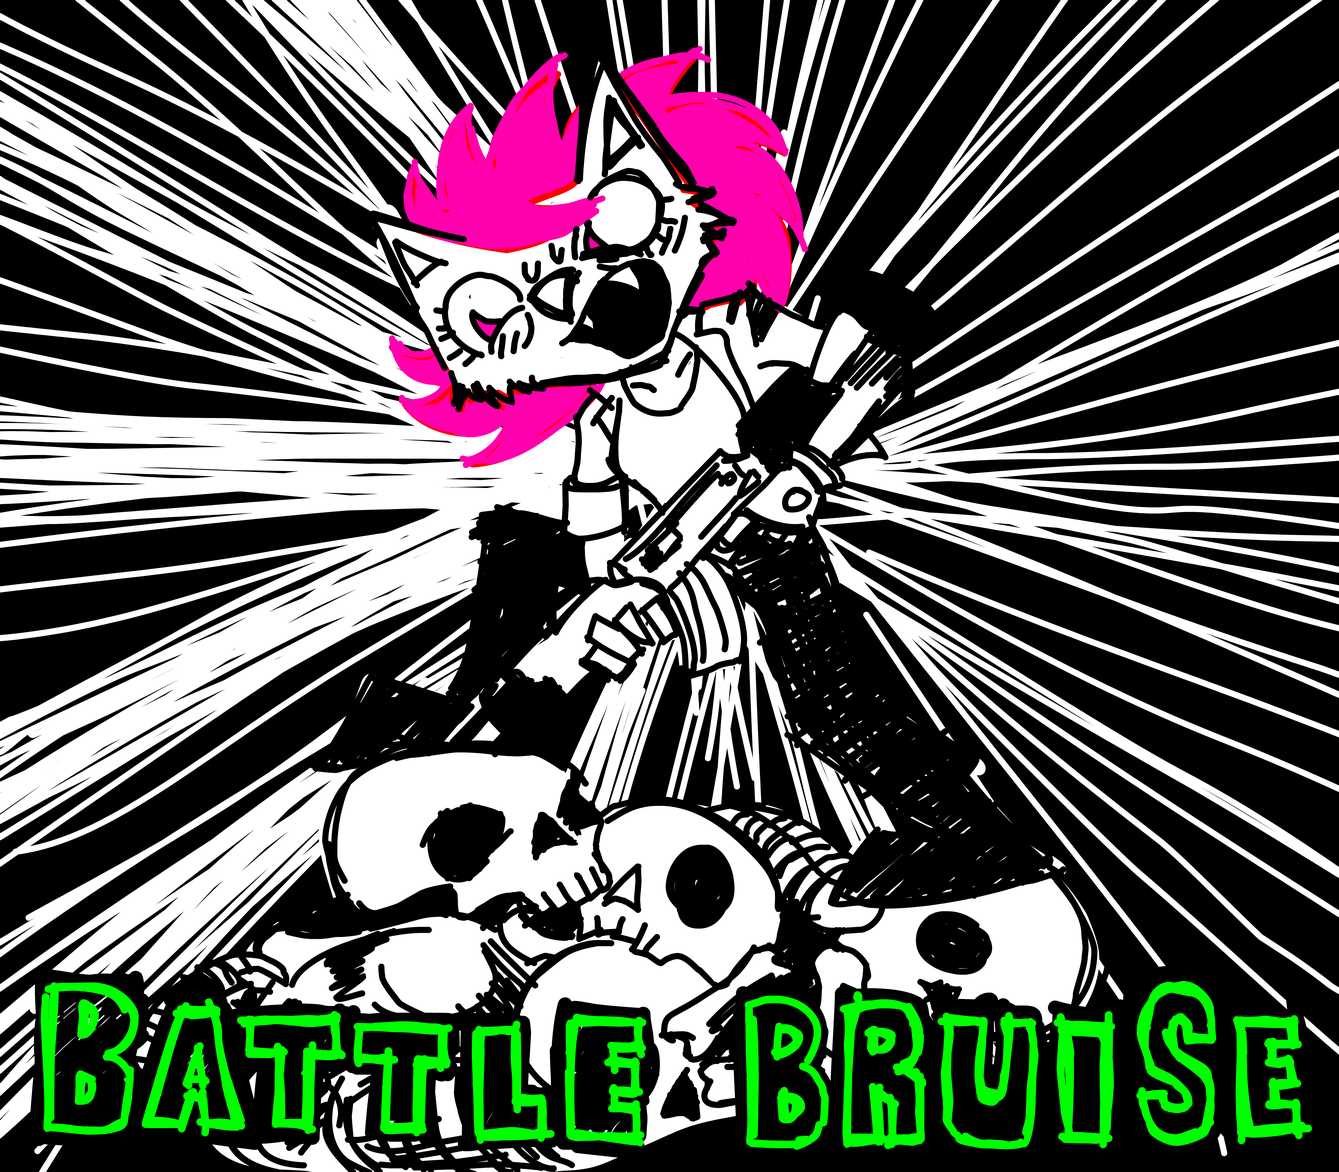 Battle Bruise - Beta testing